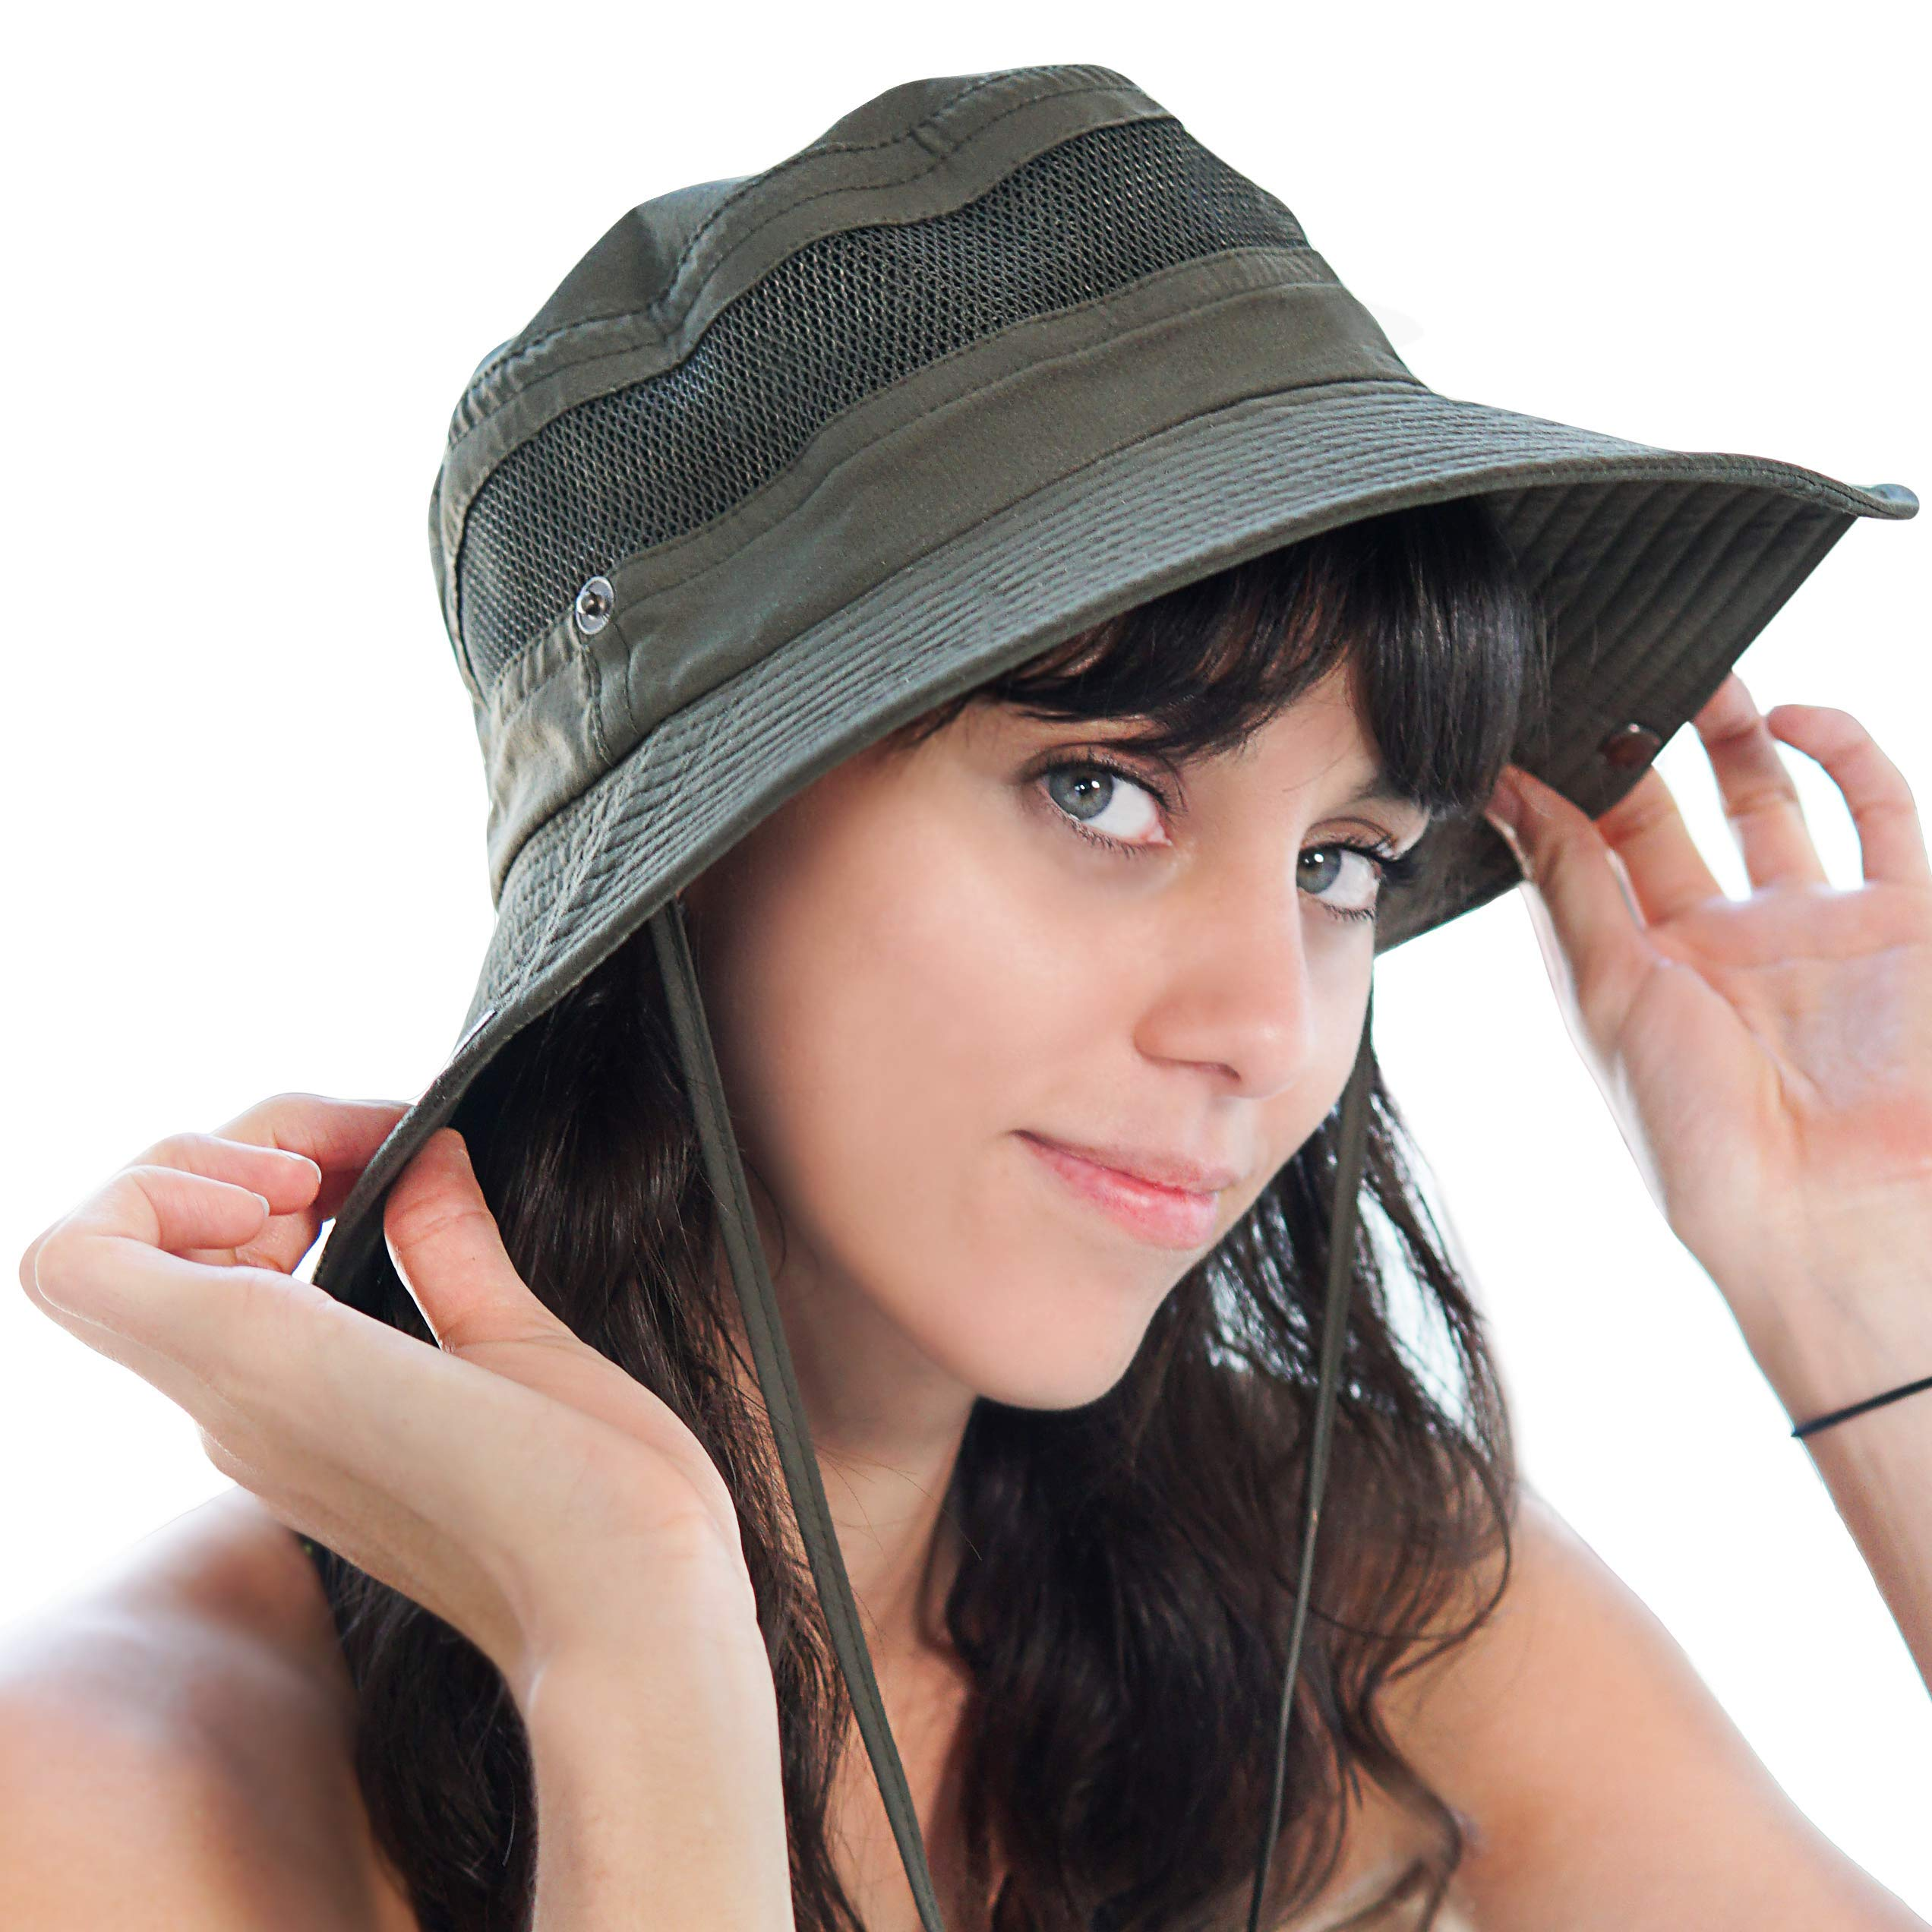 Fishing Hat Safari Cap with Sun Protection for Men and Women (Army Green) by GearTOP (Image #8)